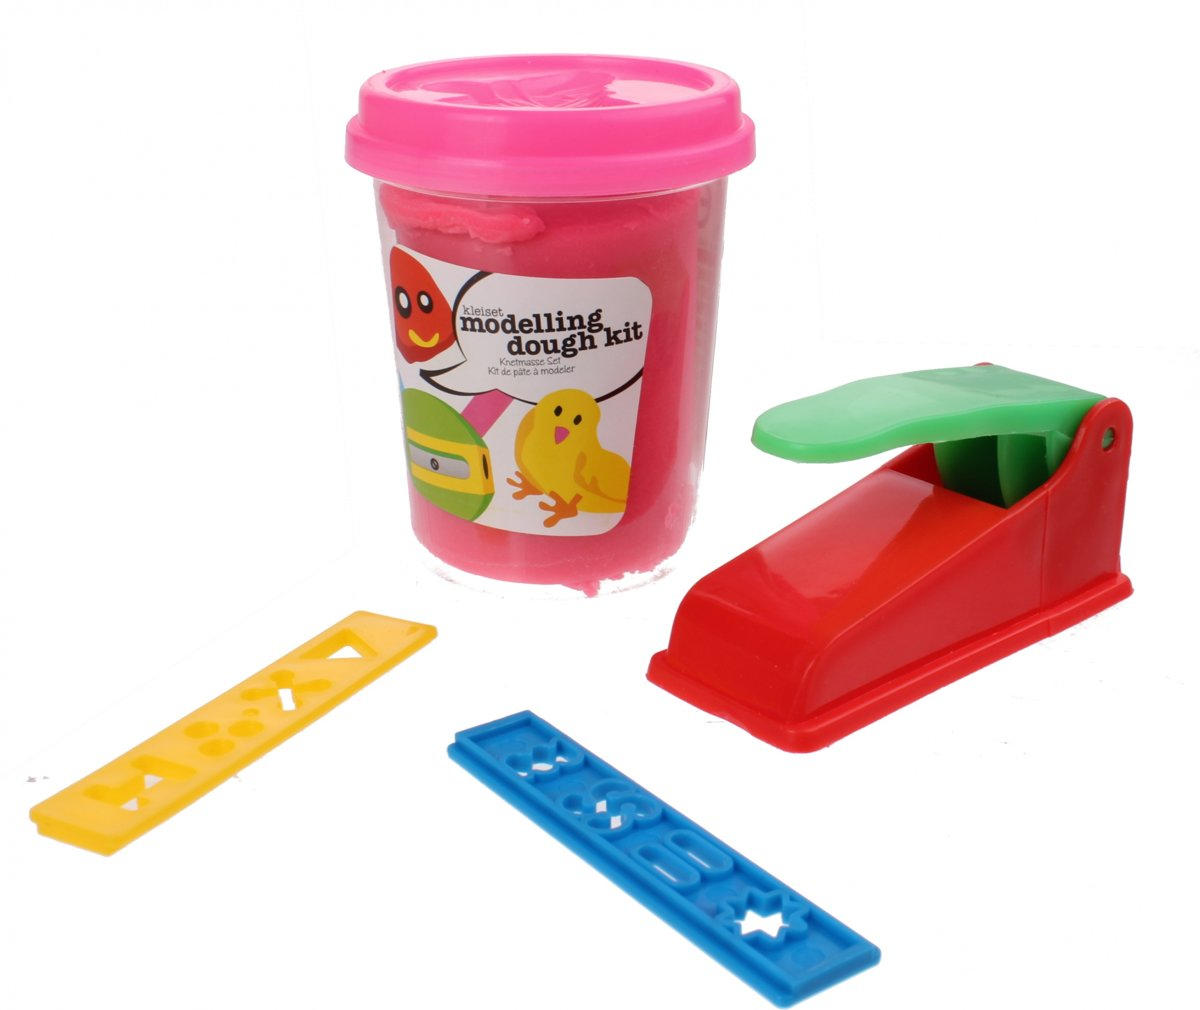 Free And Easy Kleiset Modelling Dough Kit Roze 4-delig